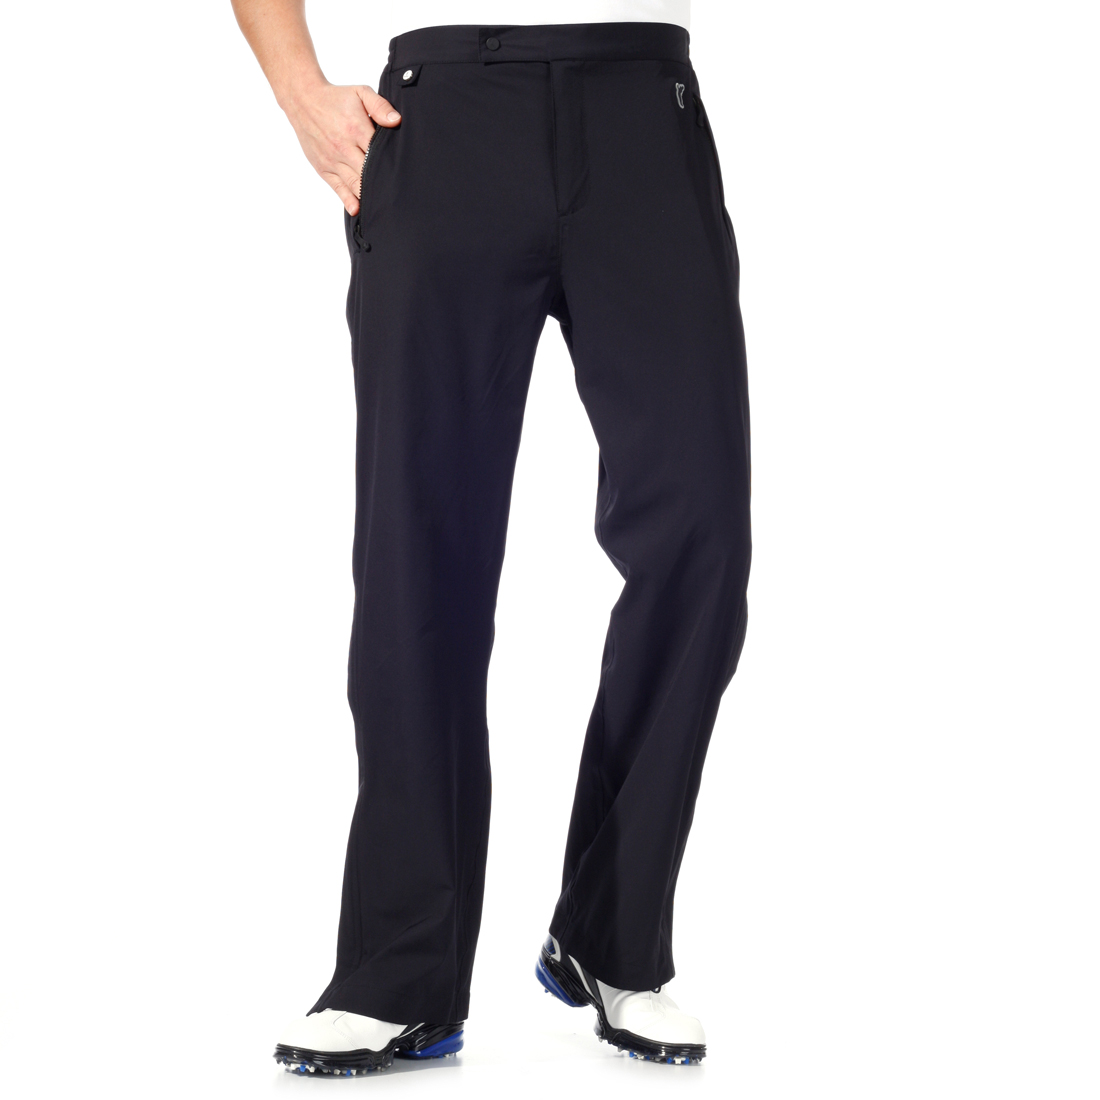 Stretch rainproof trousers